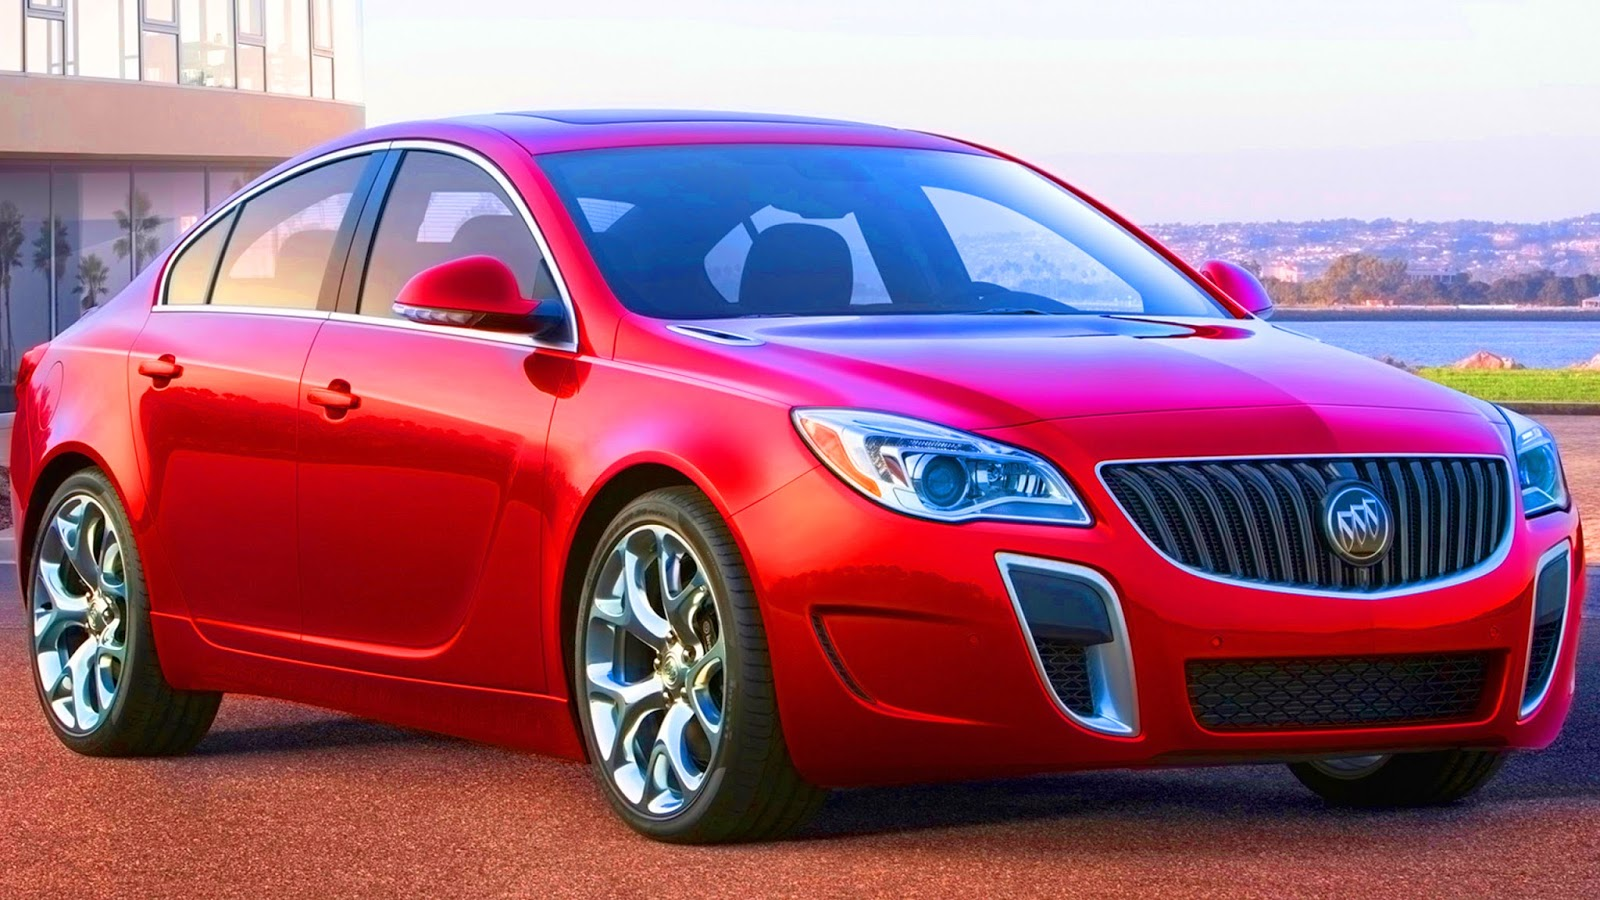 buick regal gs 2015 4x4 2 0 turbo 259 cv carwp. Black Bedroom Furniture Sets. Home Design Ideas